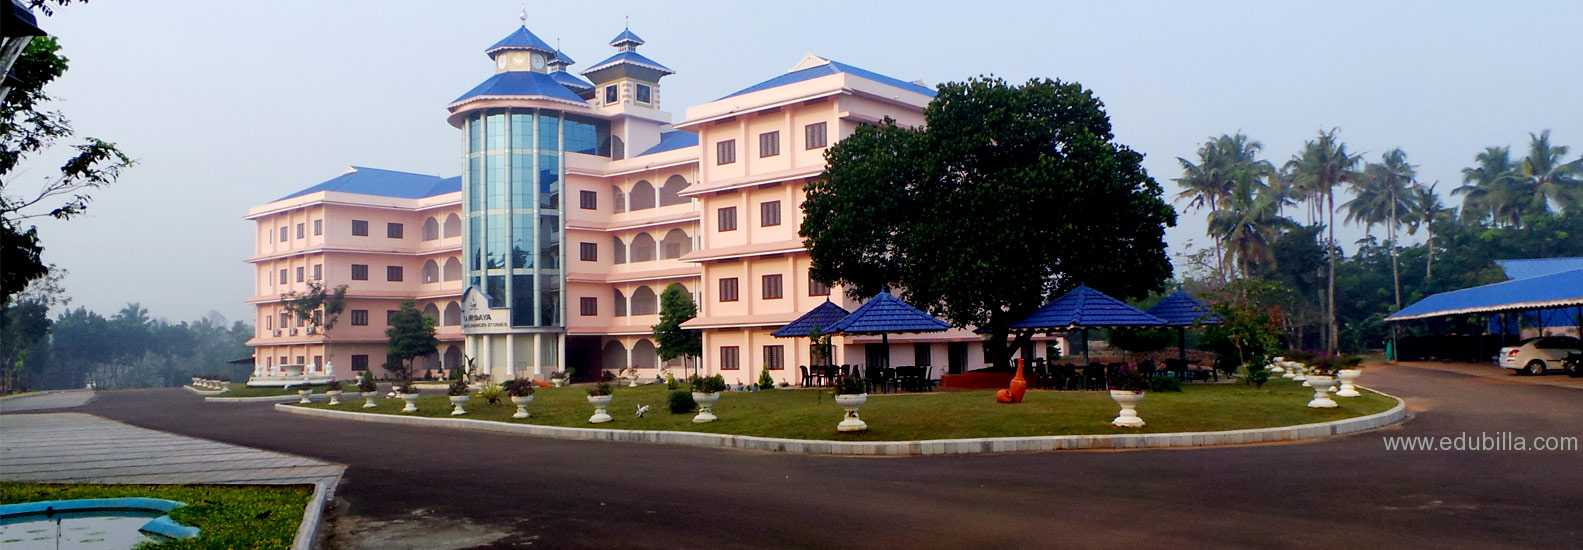 sahrudaya_college_of_advanced_studies_kodakara1.jpg